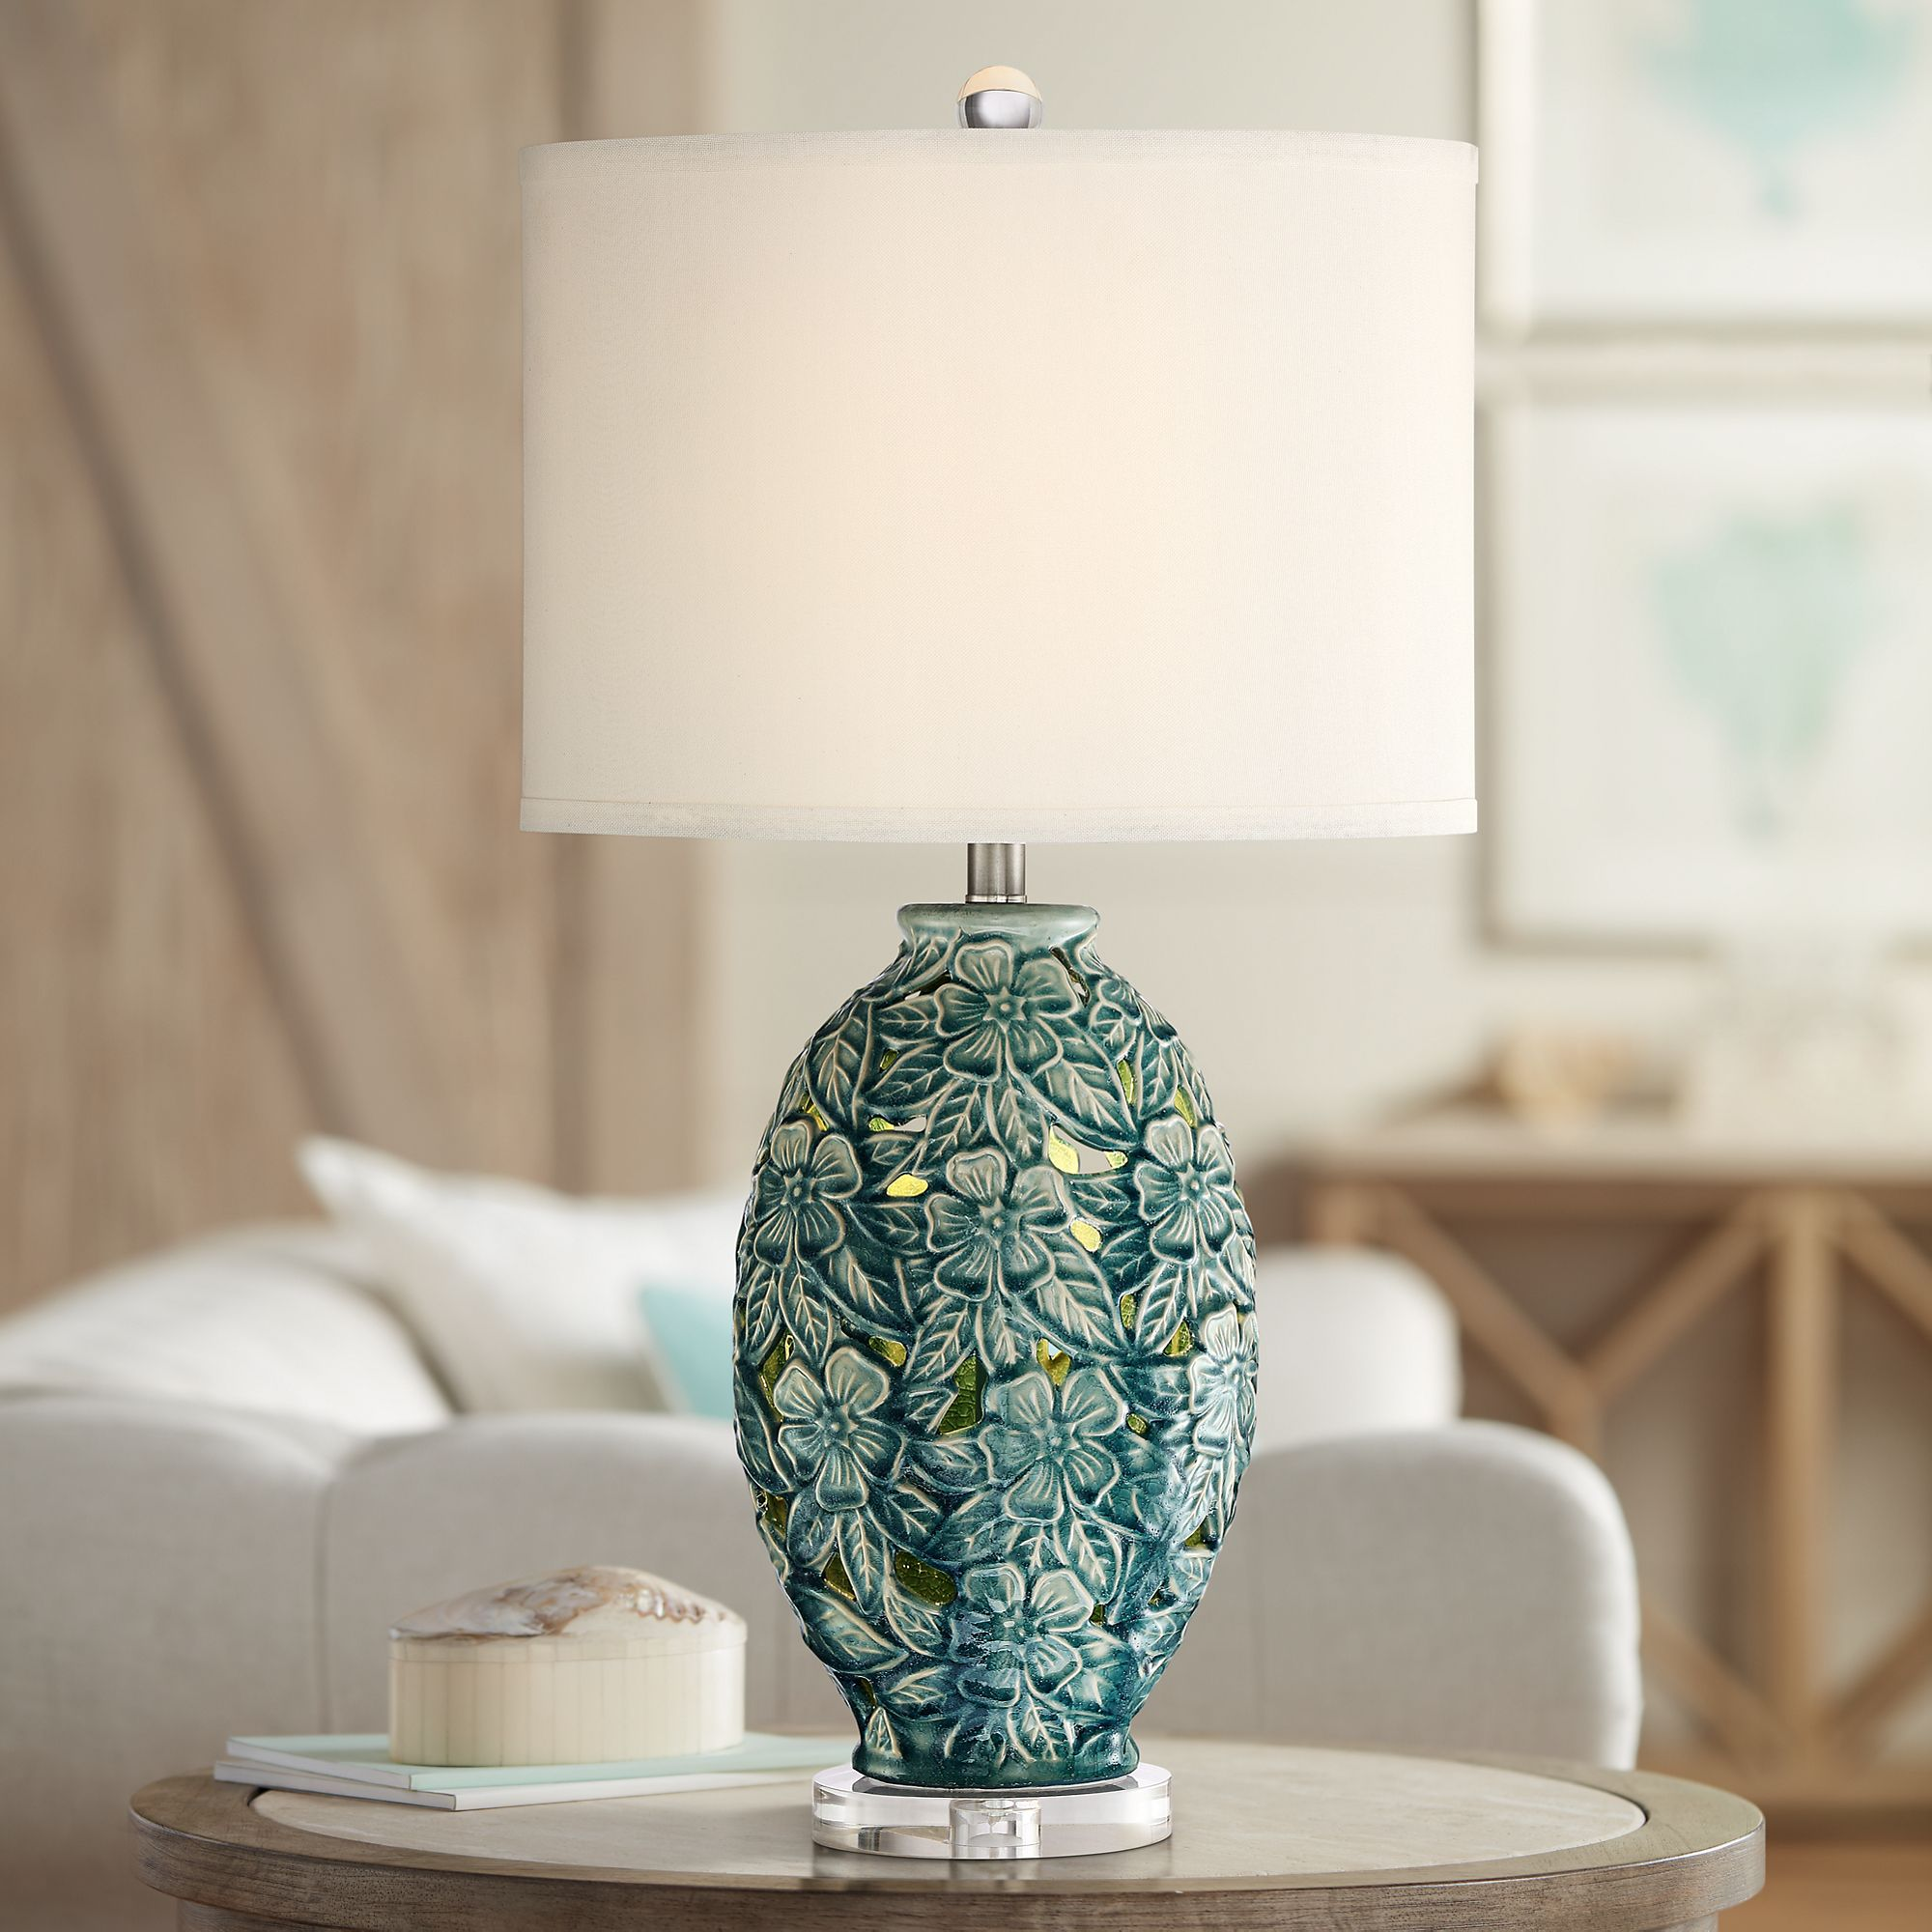 Possini Euro Clair Ceramic LED Night Light Table Lamp